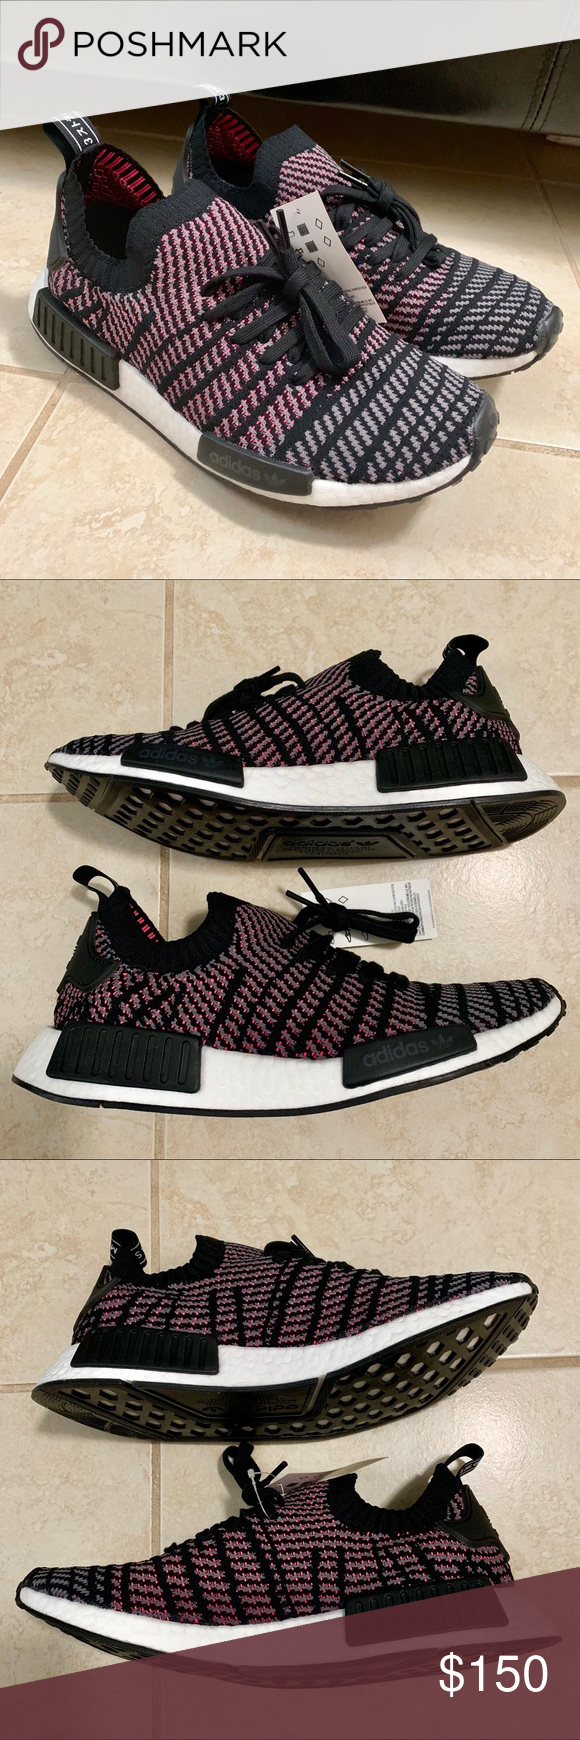 new products ab71b f8149 New Men s Adidas NMD R1 PK STLT US 9.5 Brand new Men s Adidas NMD R1 PK STLT.  Size  US 9.5. Color  Black Grey Solar Pink. Primeknit upper, Boost  technology, ...